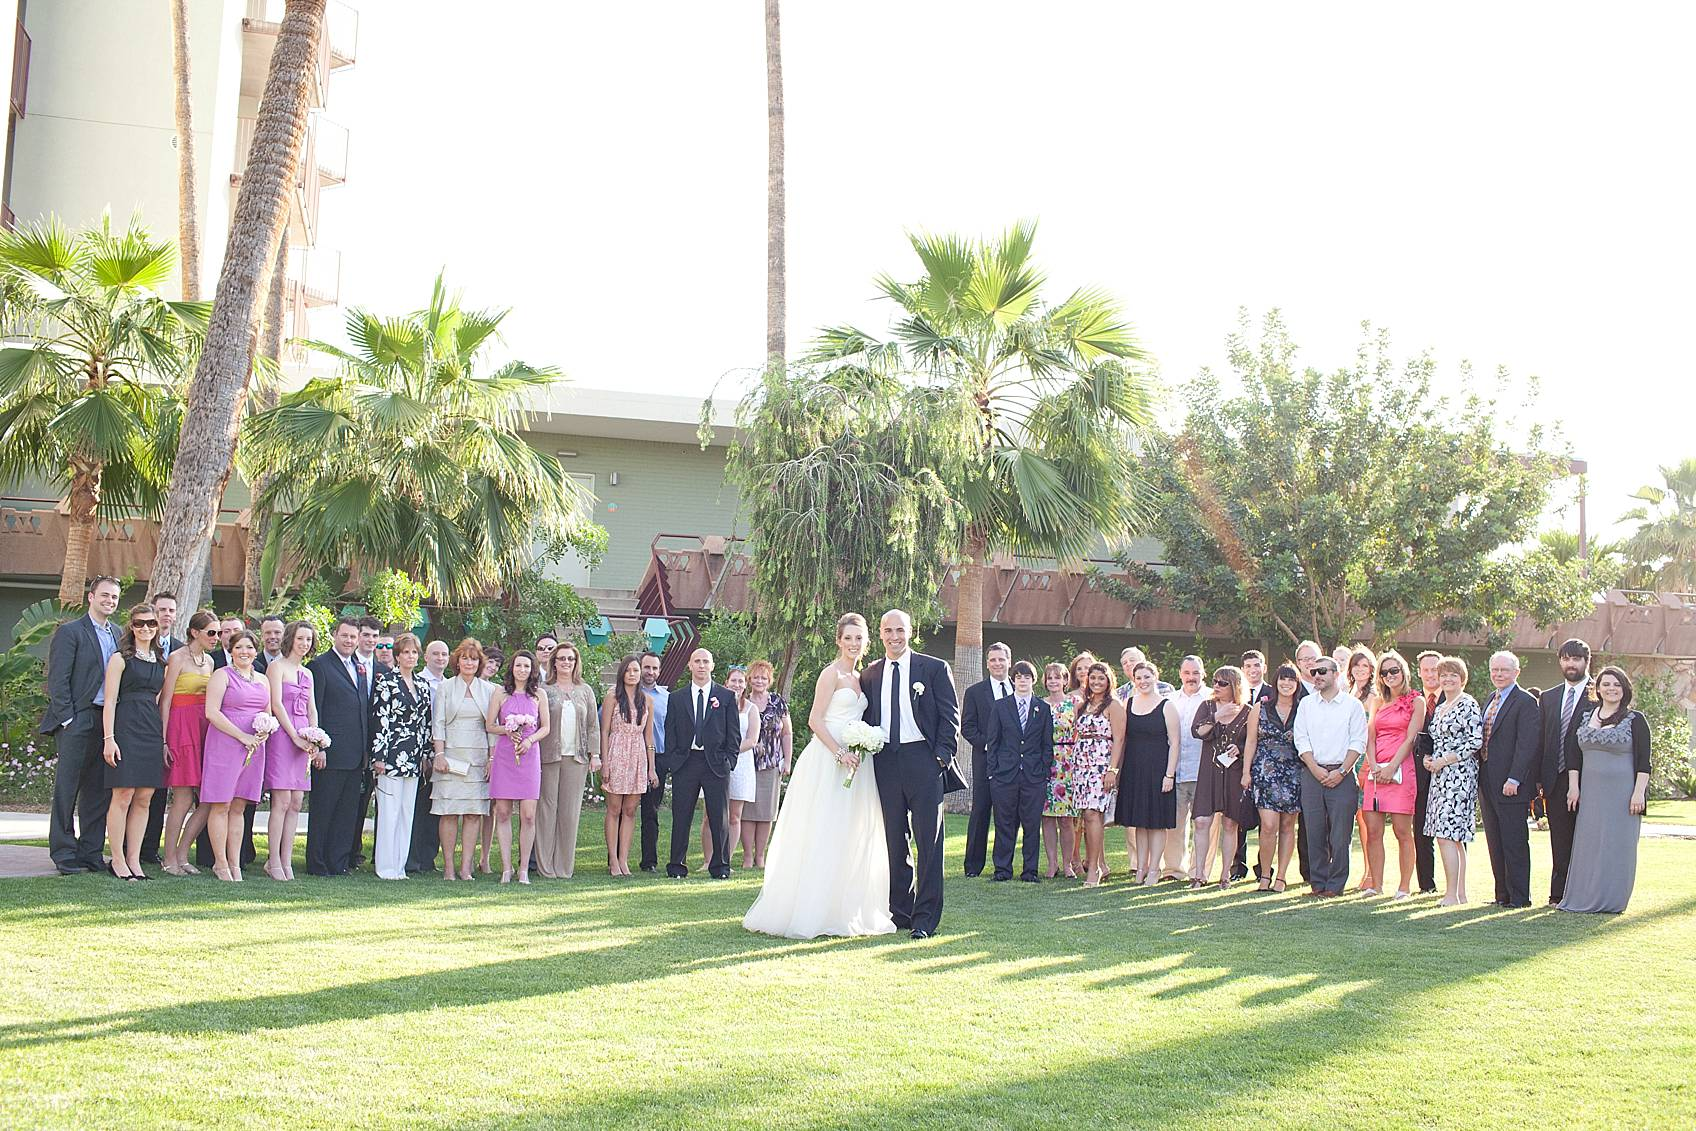 entire wedding guests behind bride and groom